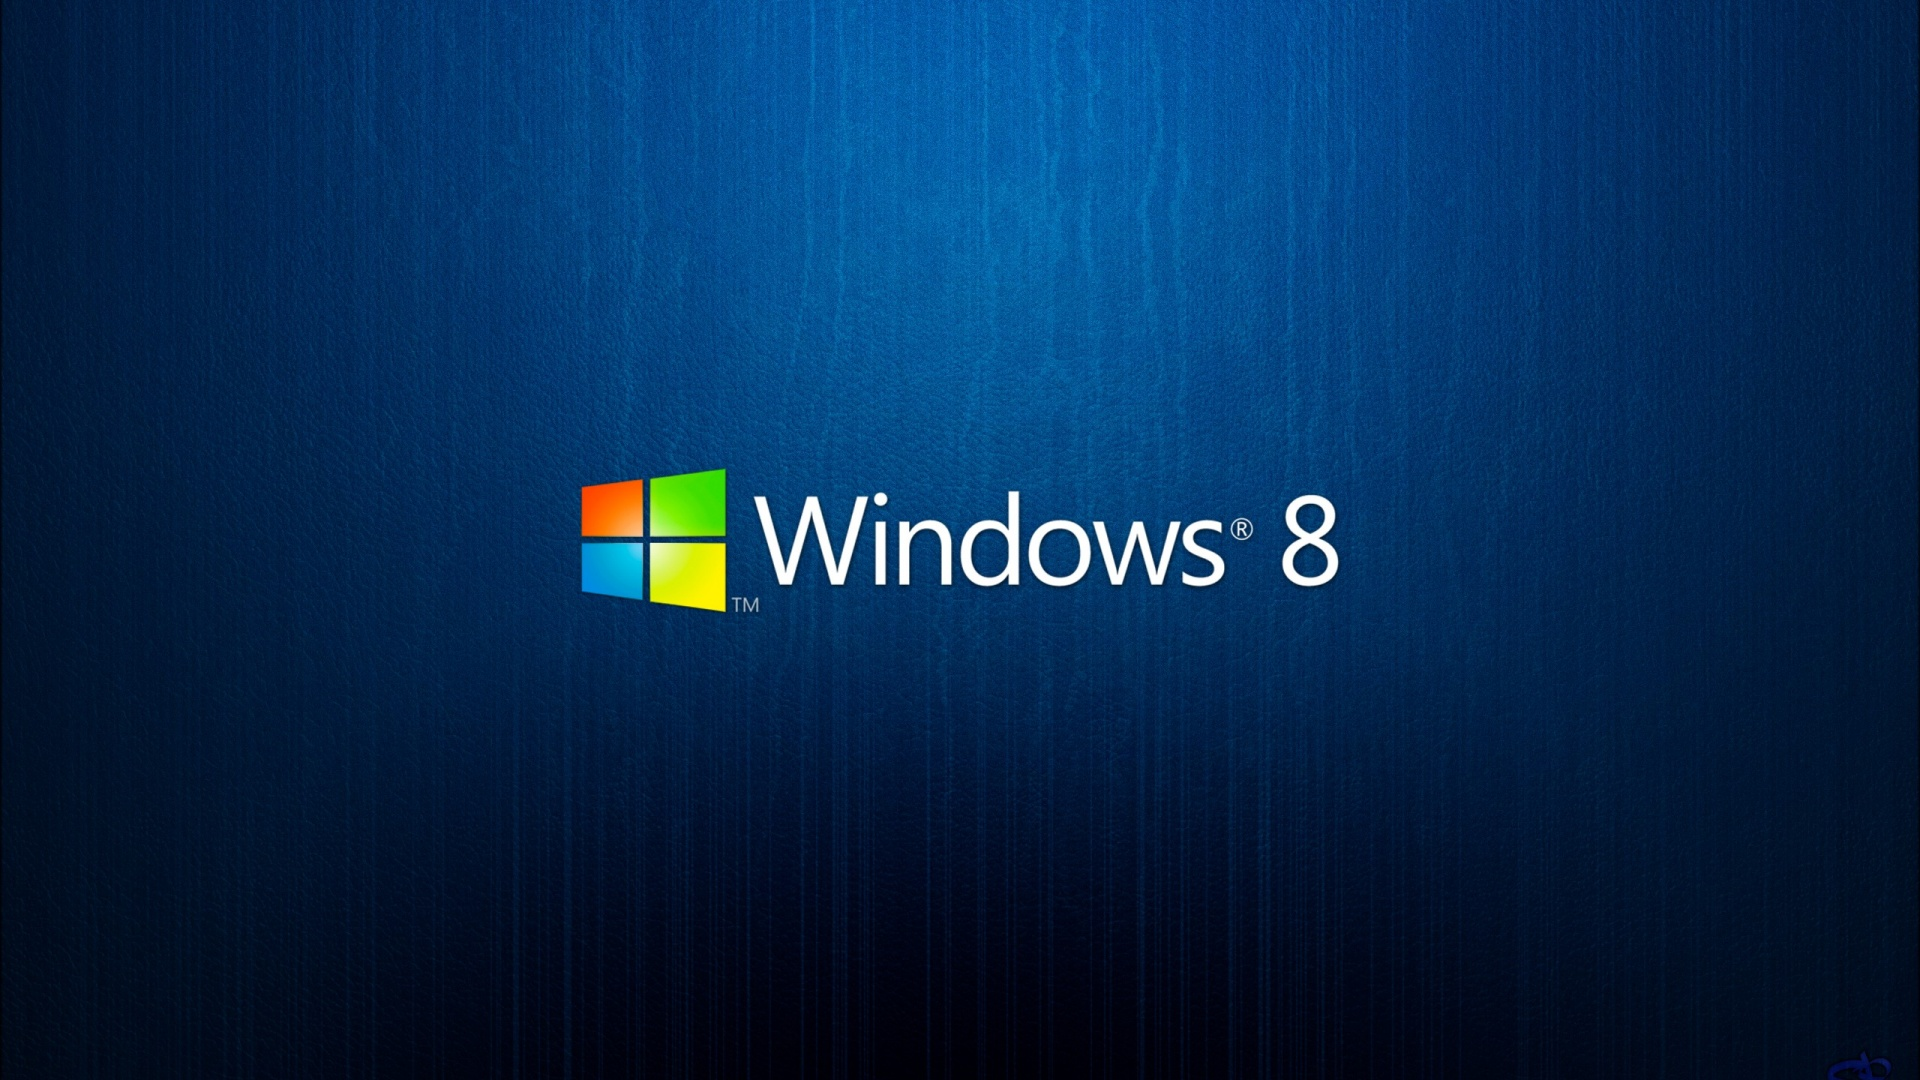 of widescreen HD wallpapers for Windows 8 found around the net 1920x1080